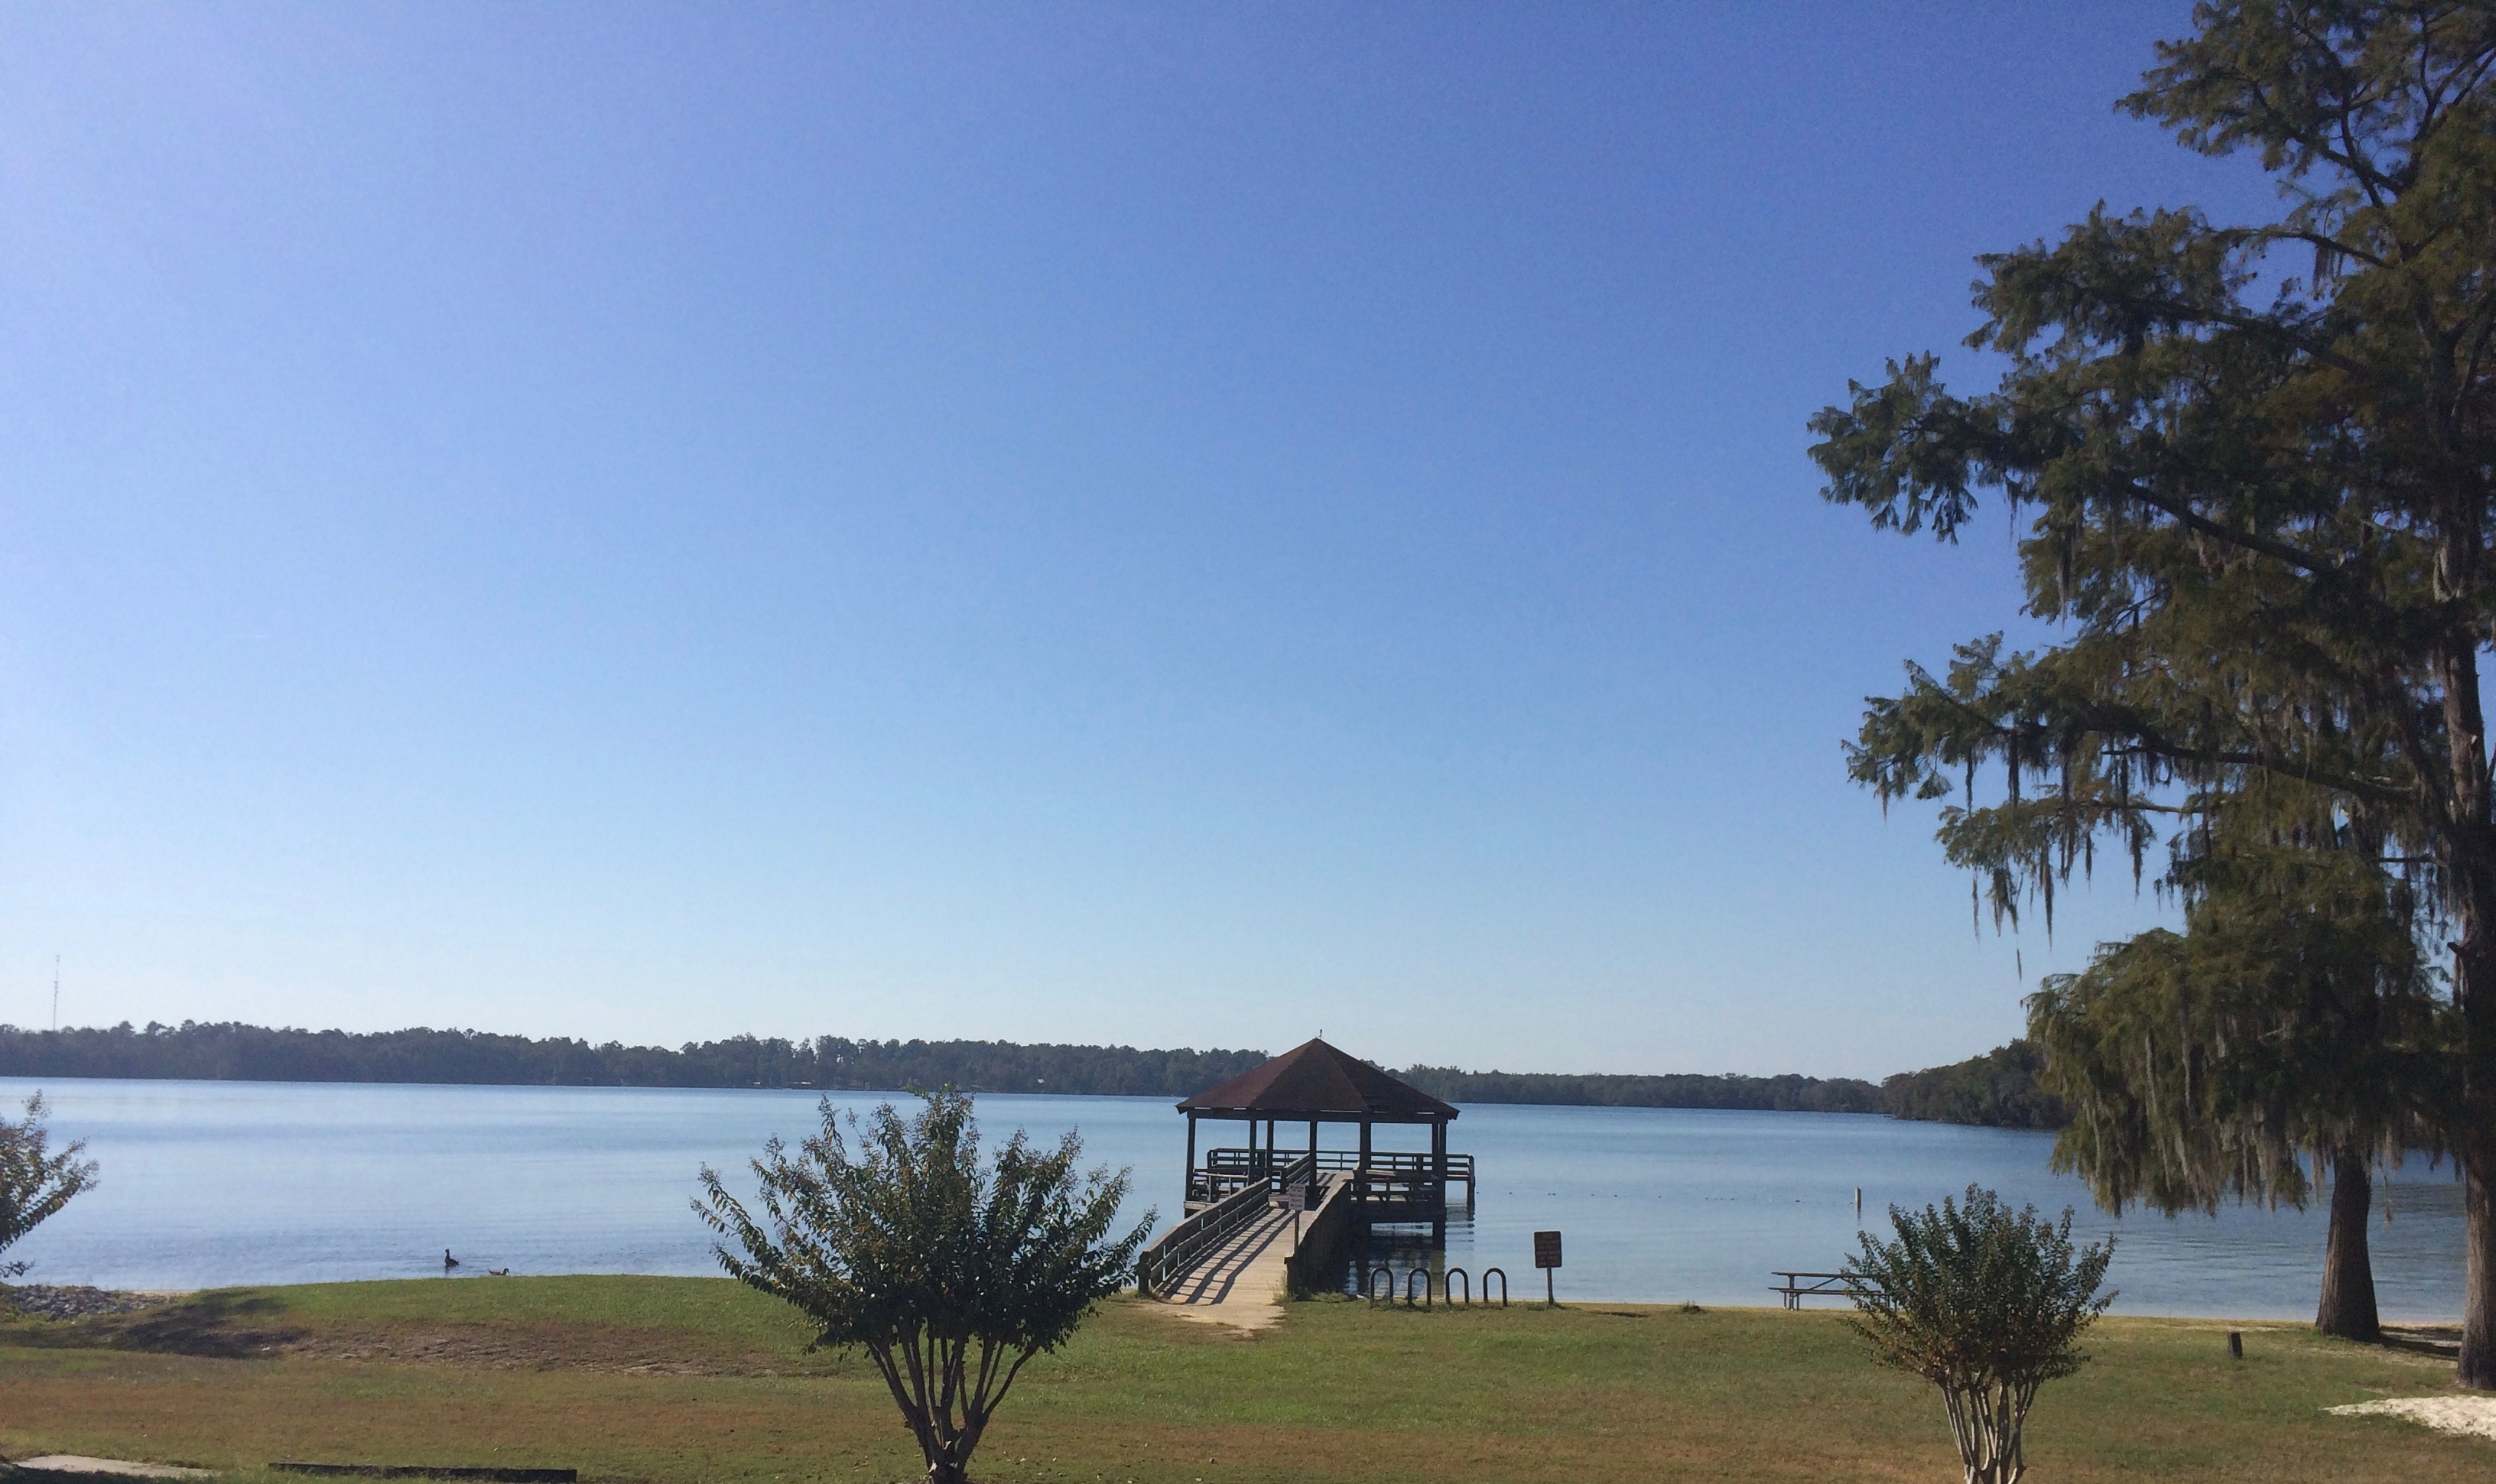 View of Lake Jackson from north end of lake at Florala State Park.